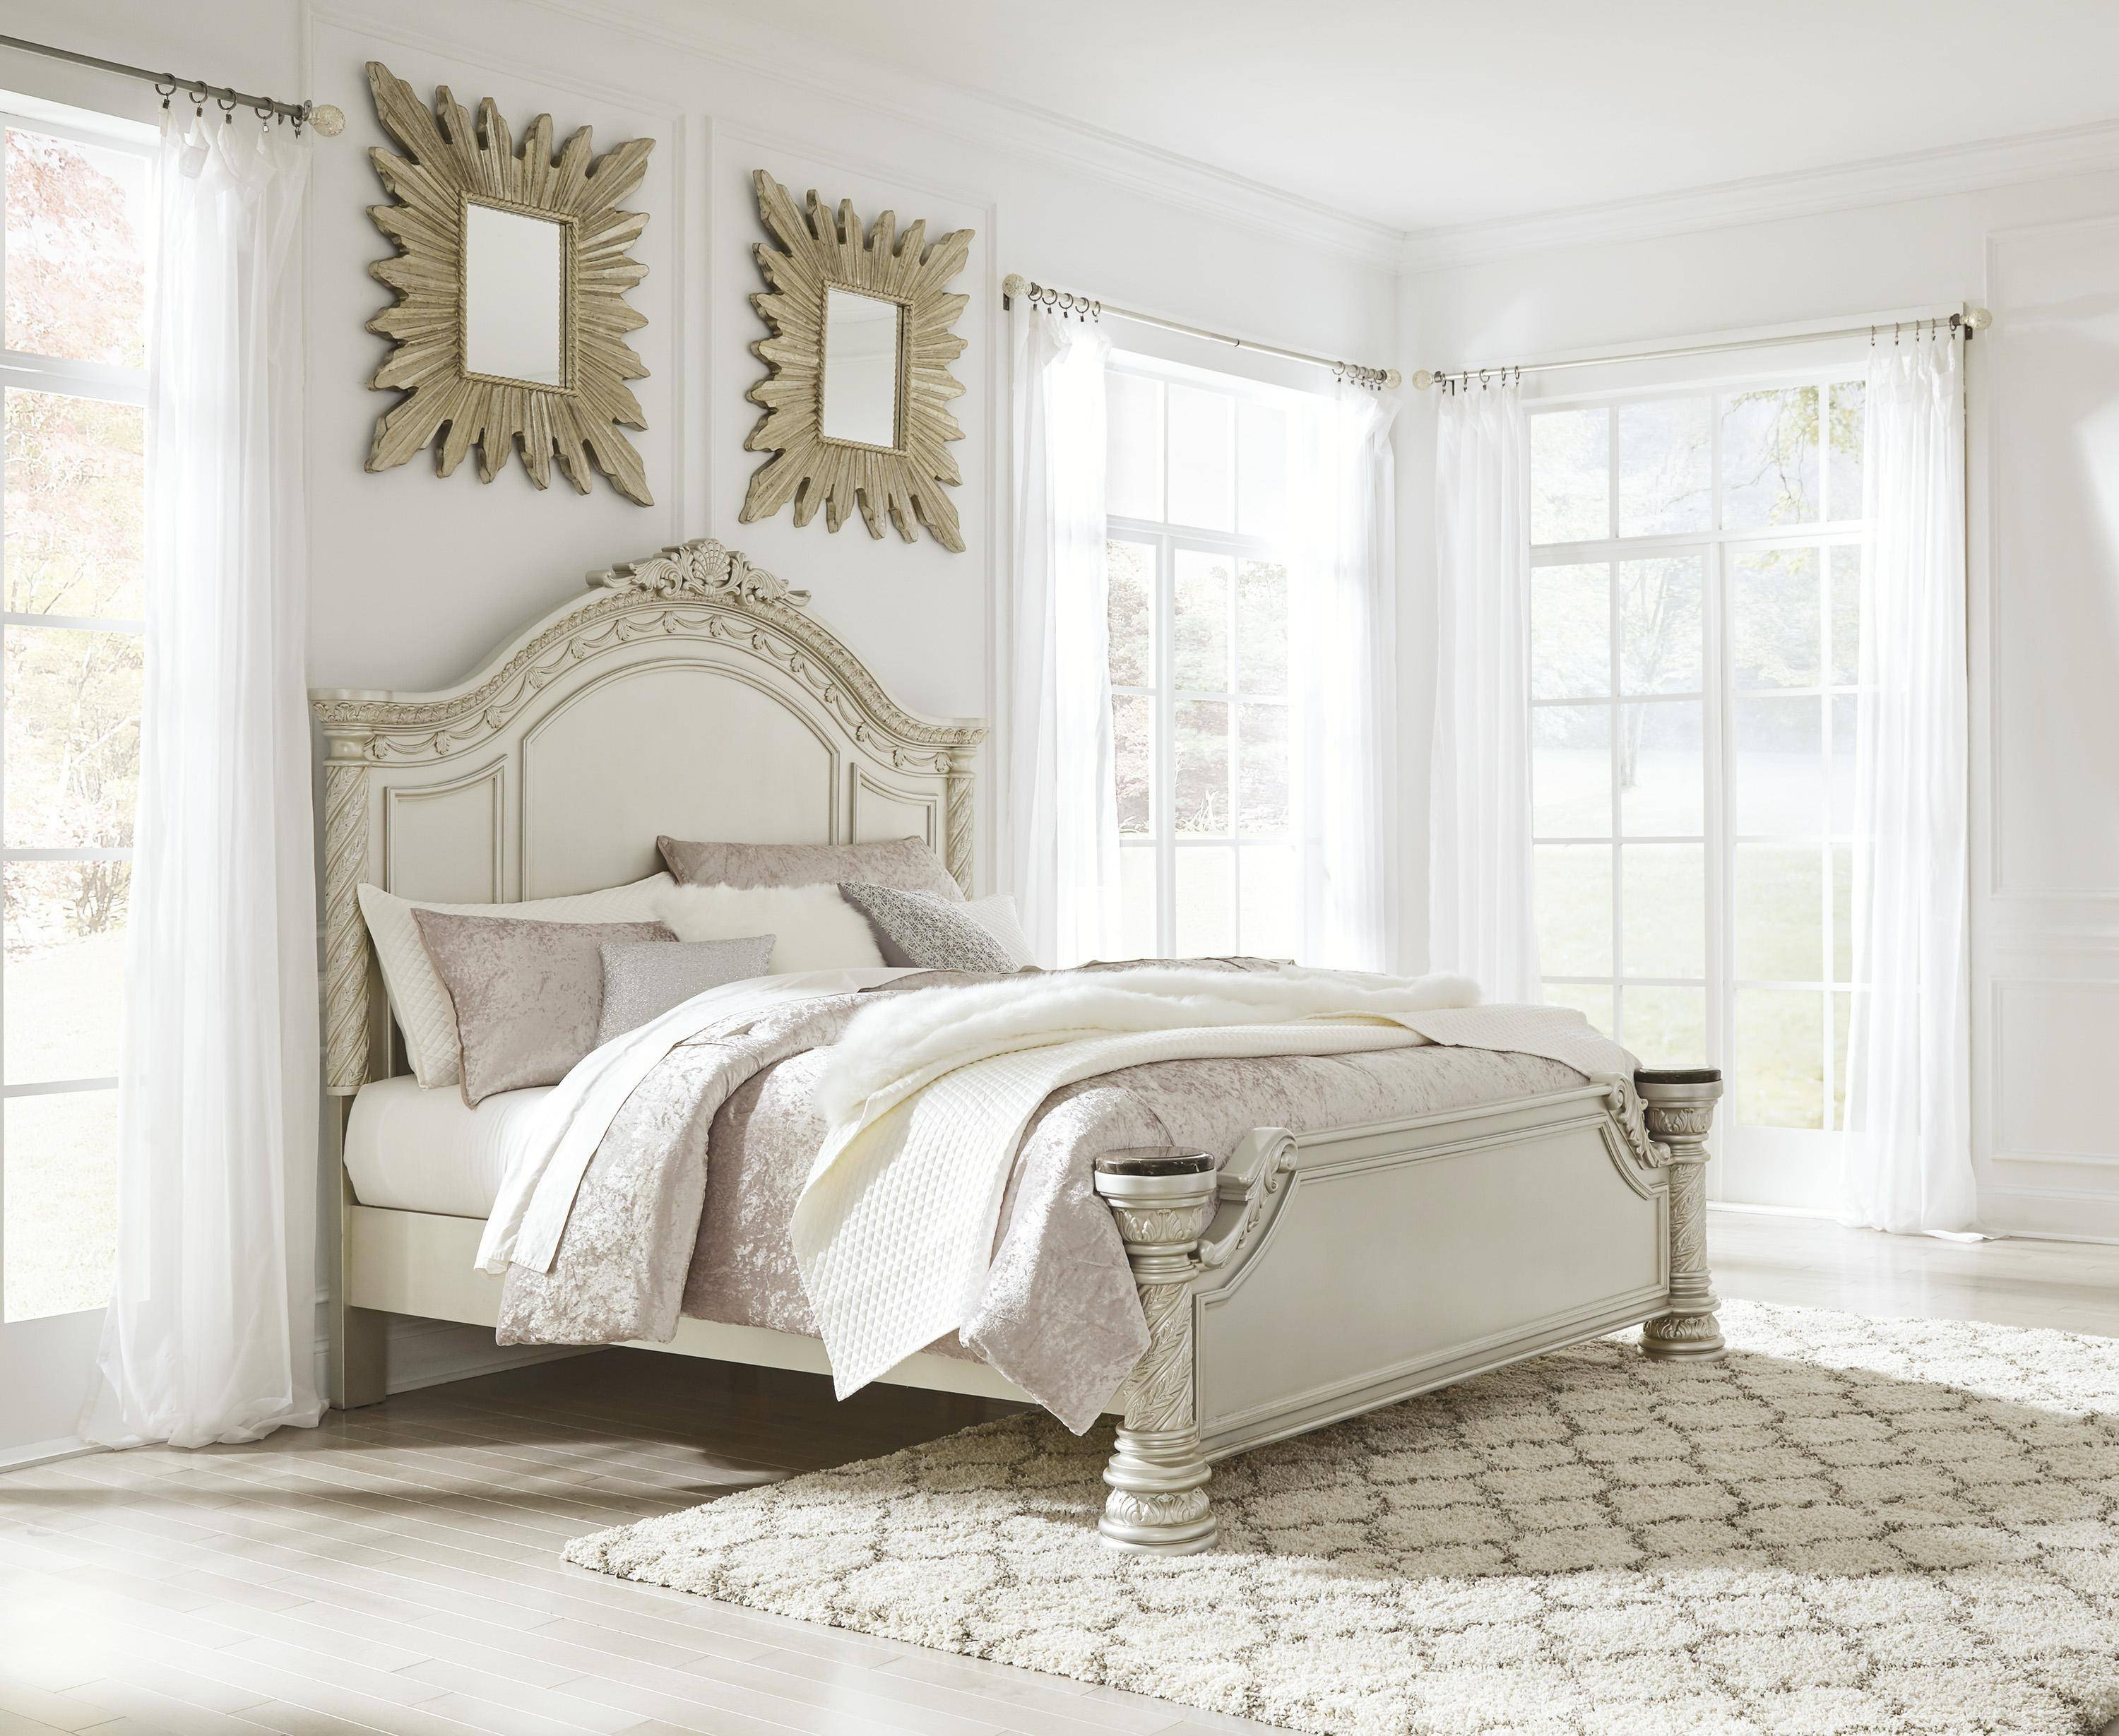 Ashley Furniture Silver Bedroom Set Inspirational ashley Cassimore B750 King Size Panel Bedroom Set 5pcs In